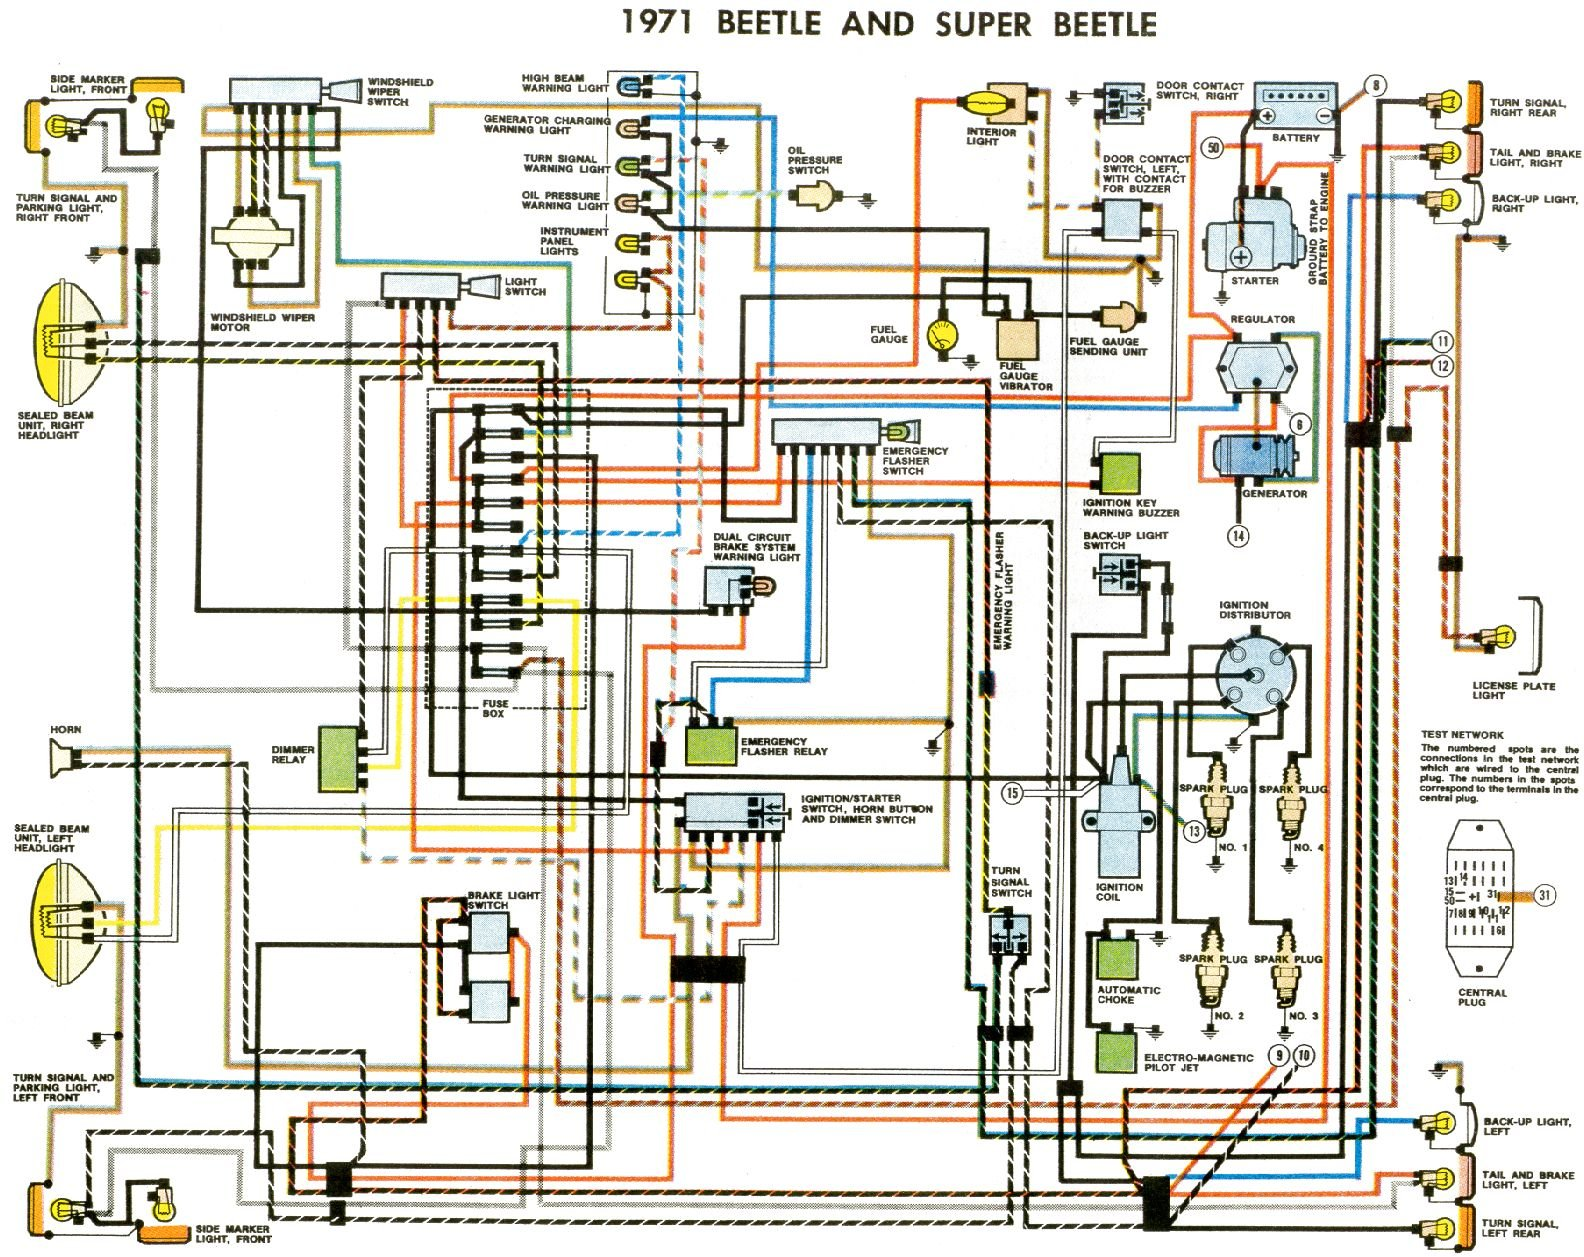 67 vw alternator wiring diagram 1971 beetle wiring diagram (usa) | thegoldenbug.com 1971 vw alternator wiring diagram #12